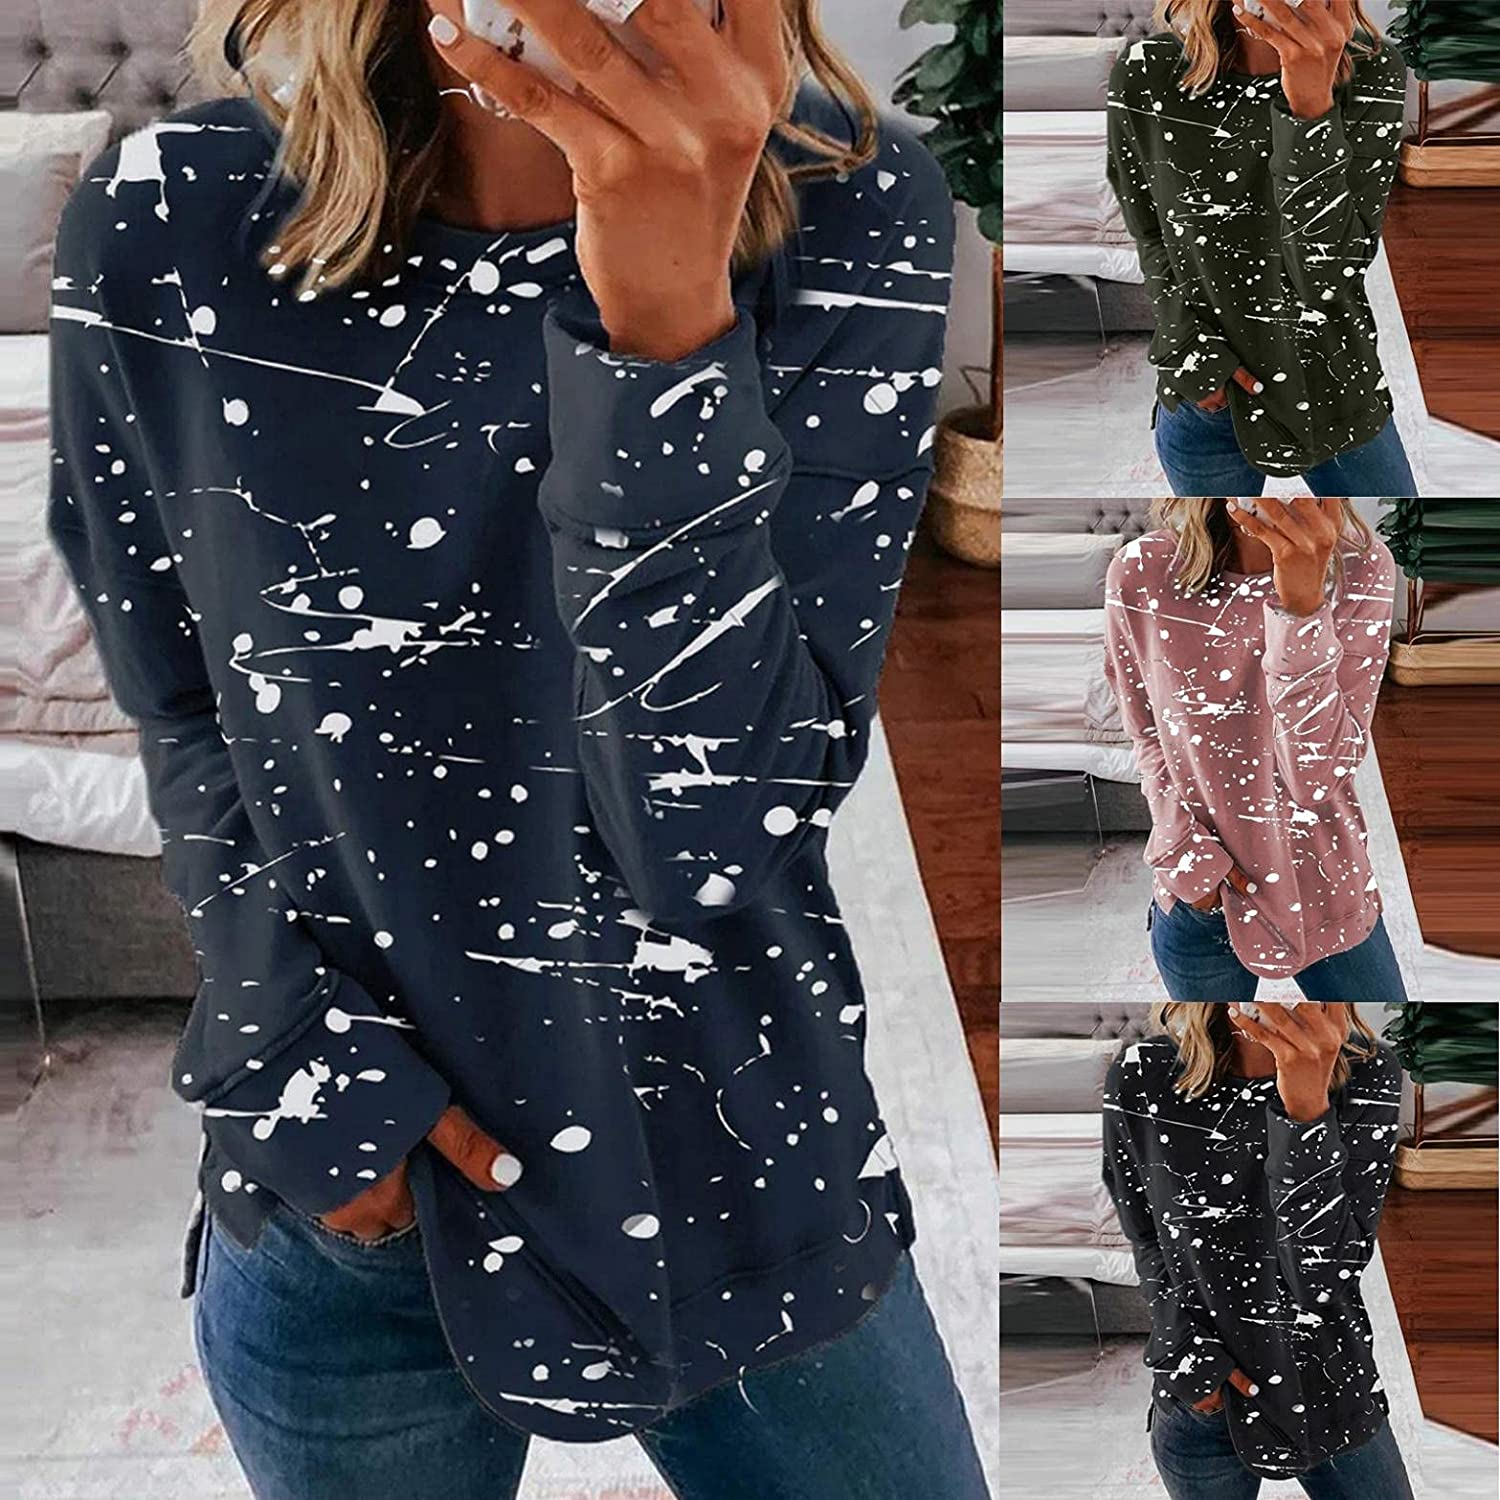 AODONG Sweaters for Women,Womens Casual Crewneck Color Printed Sweatshirt Loose Soft Long Sleeve Pullover Tops Shirts